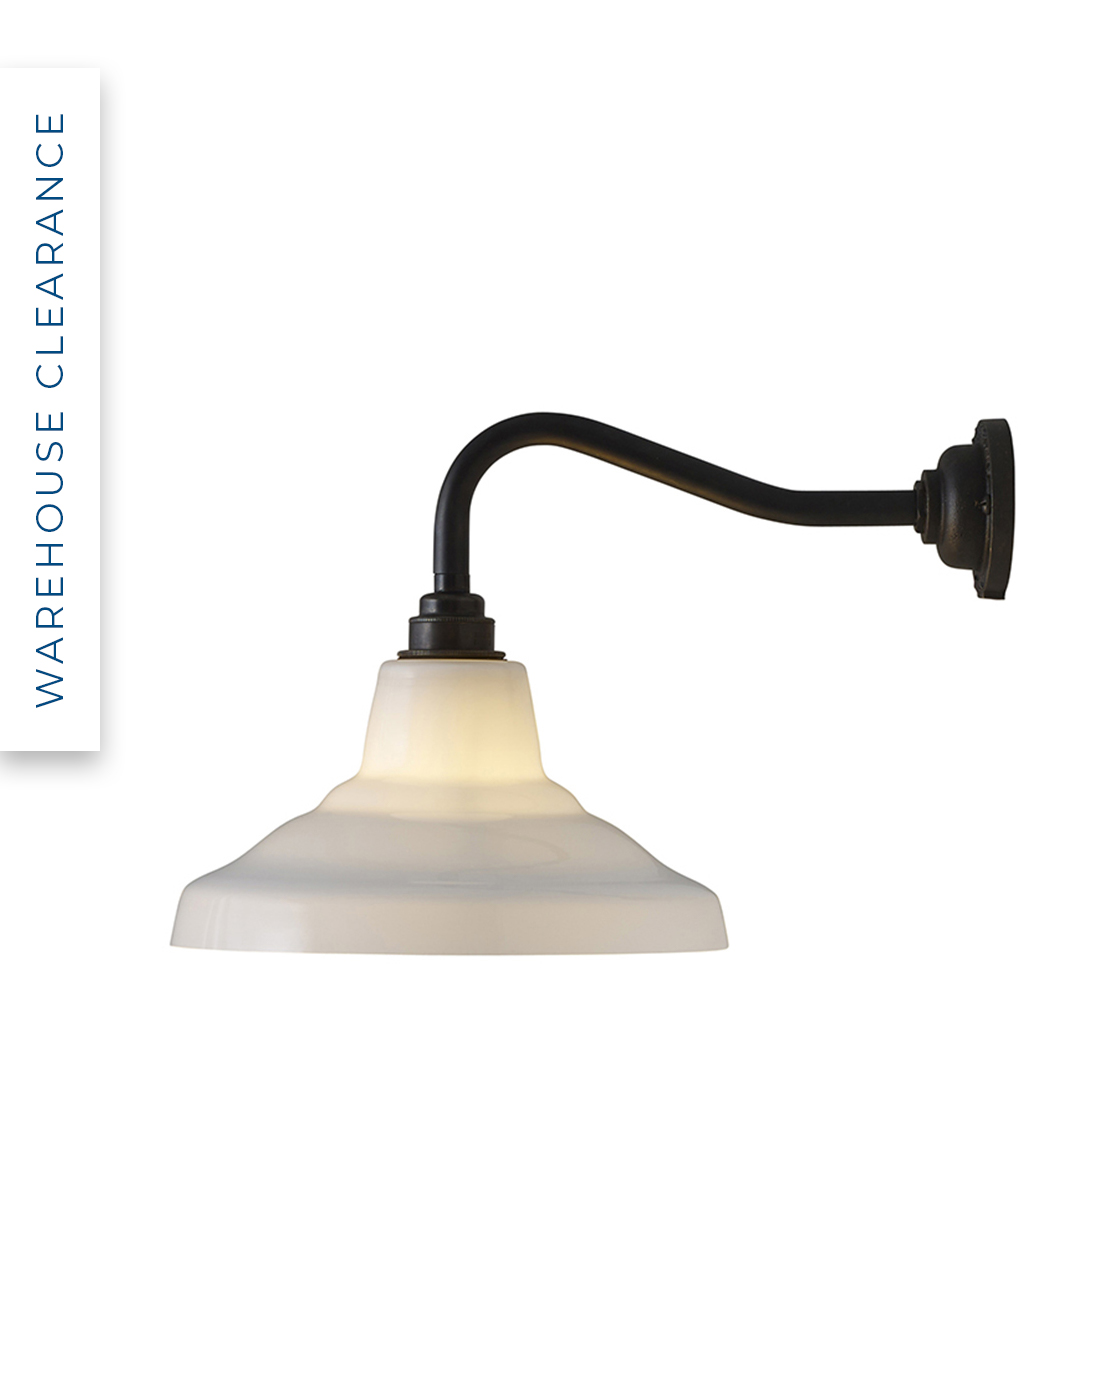 Warehouse Clearance, Glass School wall light by Davey. 45% off